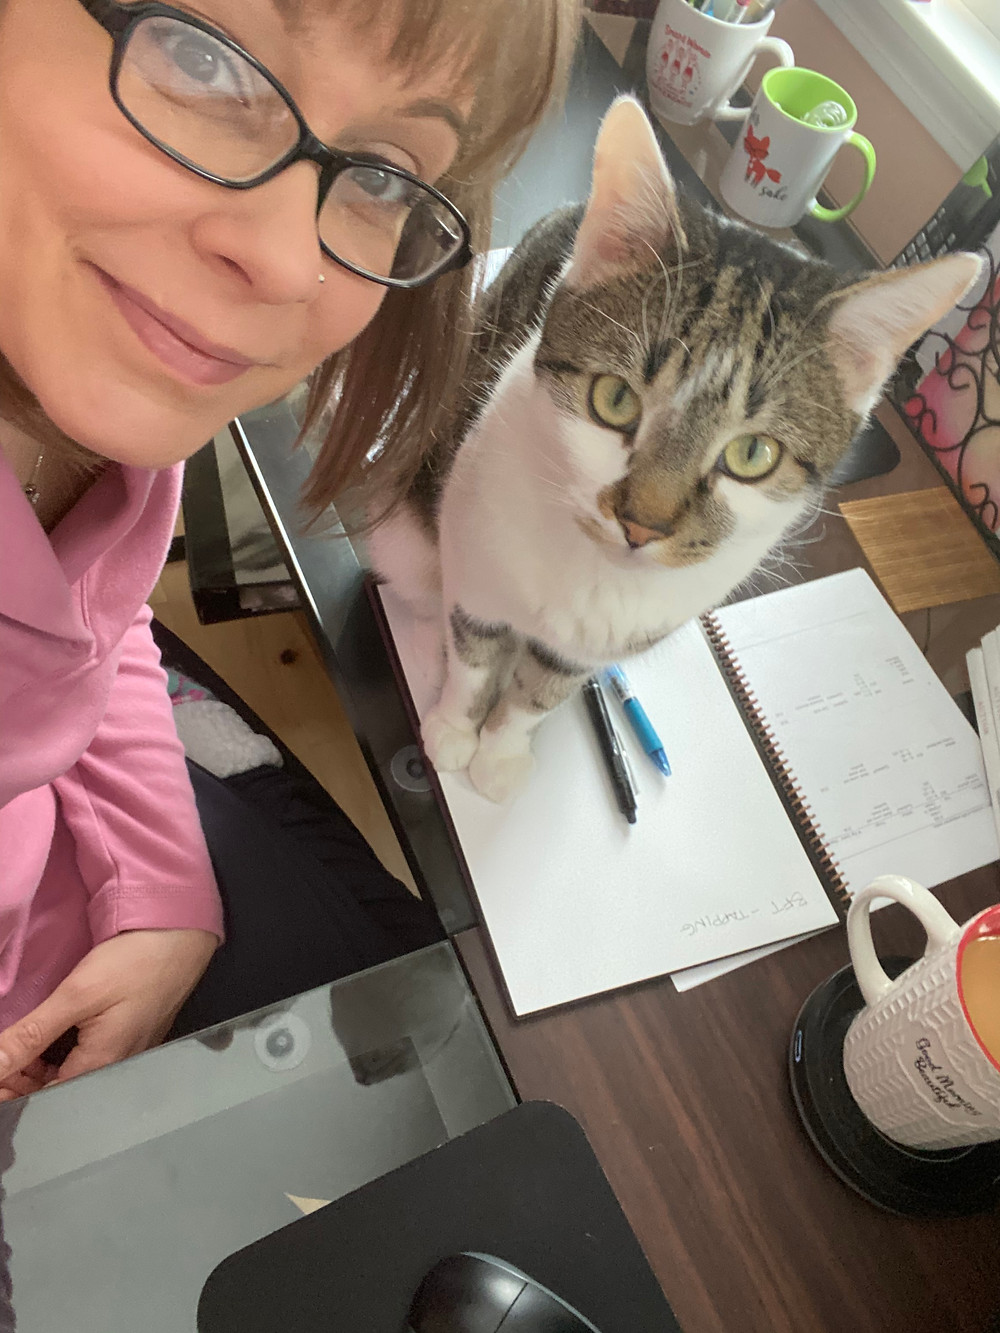 Author and her cat looking up at a camera